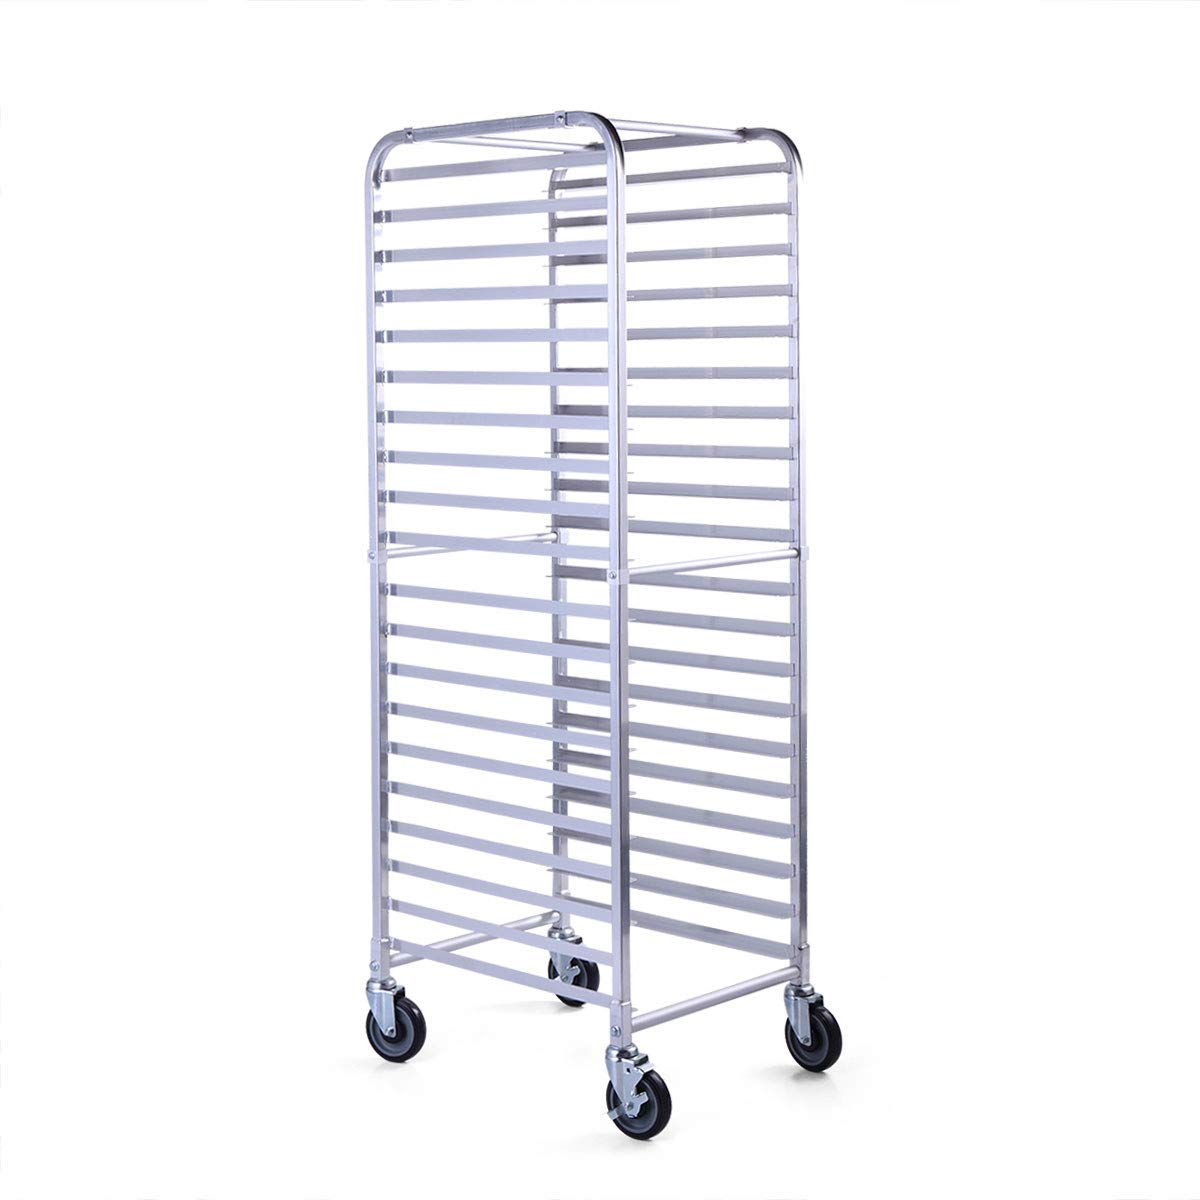 20 Tier Aluminum Bakery Rack Commercial Bun Sheet Pan Rolling Kitchen Trolley Storage by Thegreatshopman